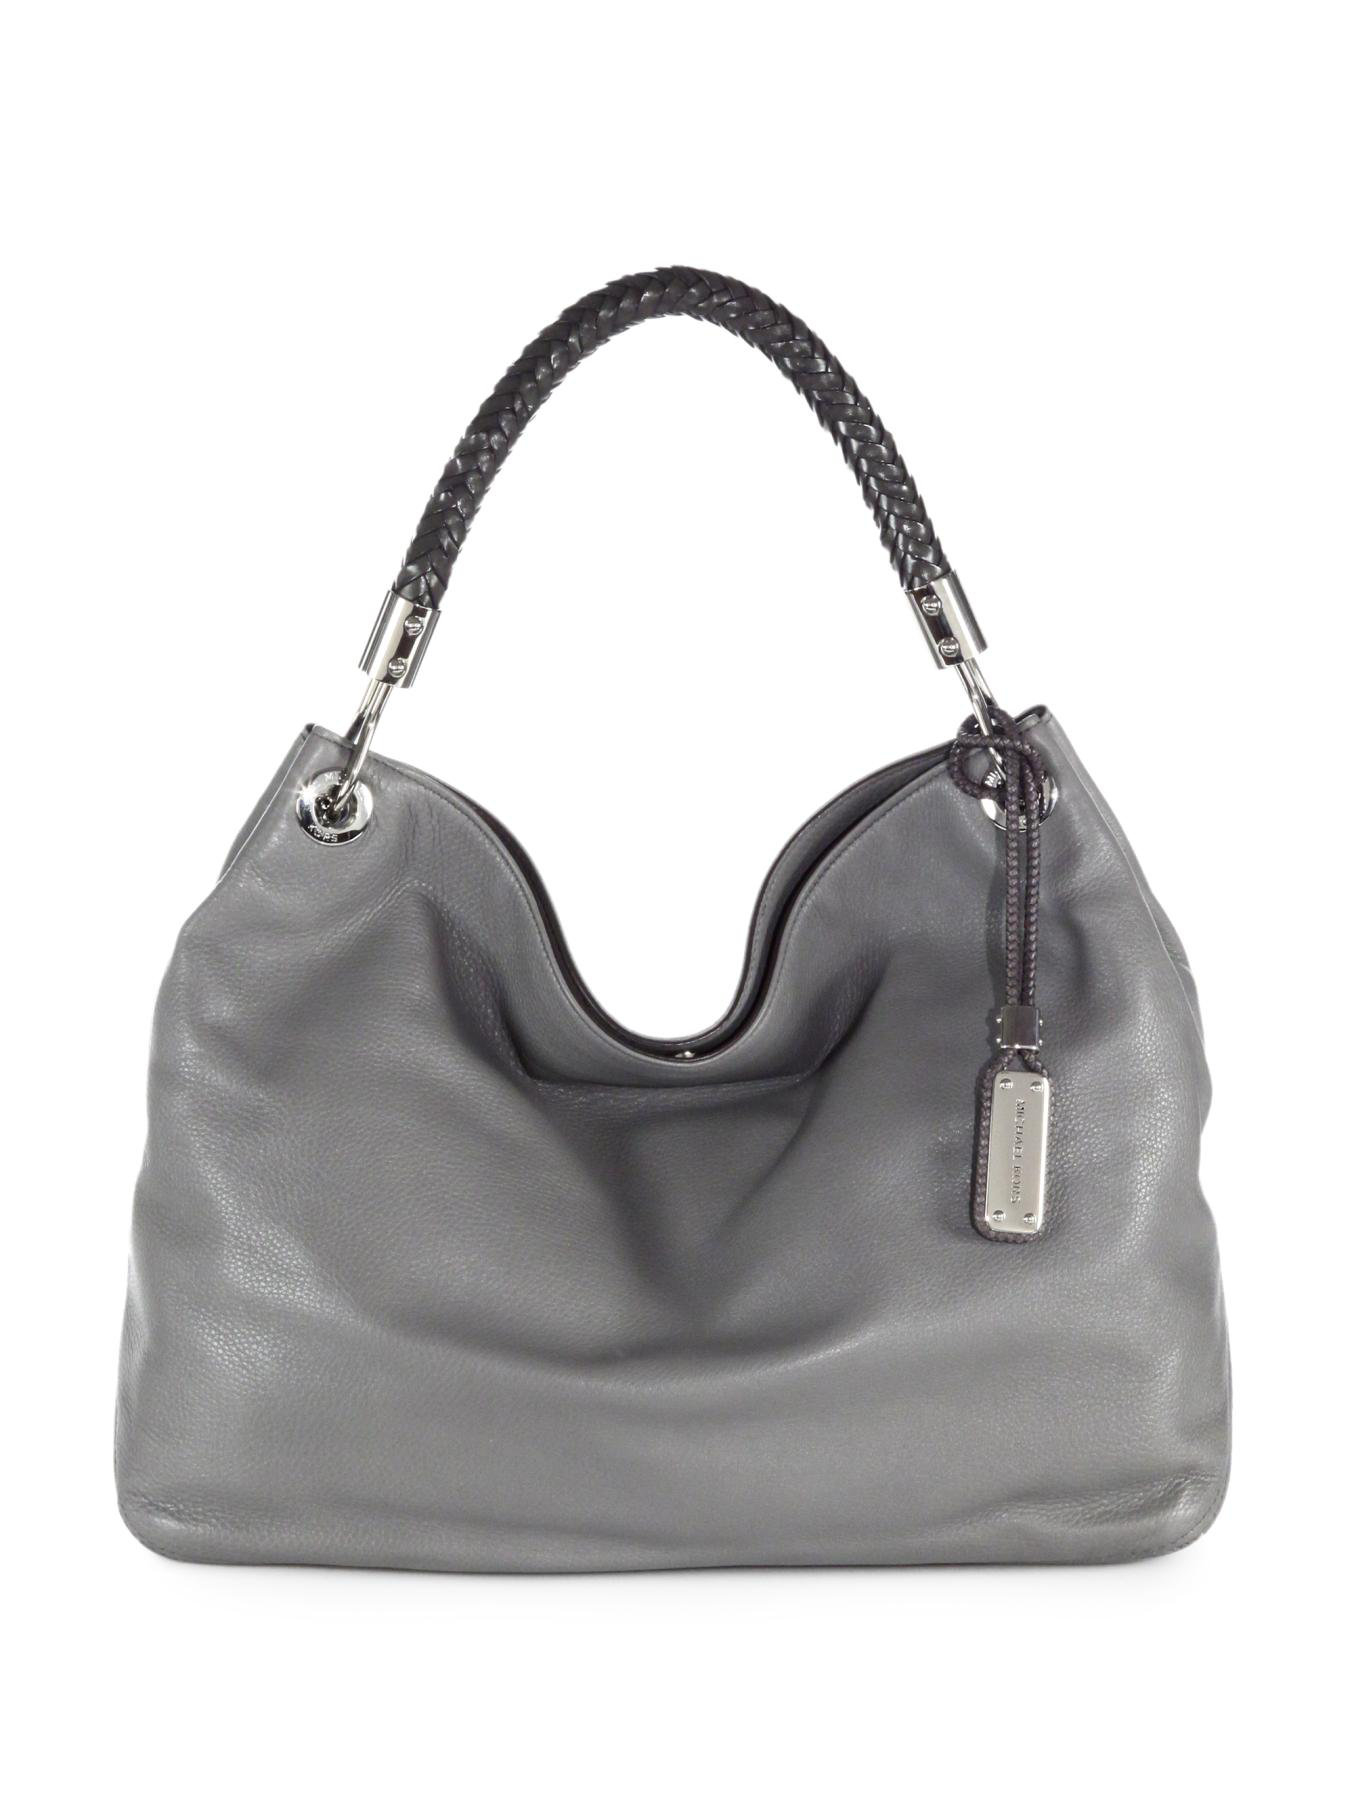 Michael Kors Skorpios Large Hobo Bag In Gray Lyst